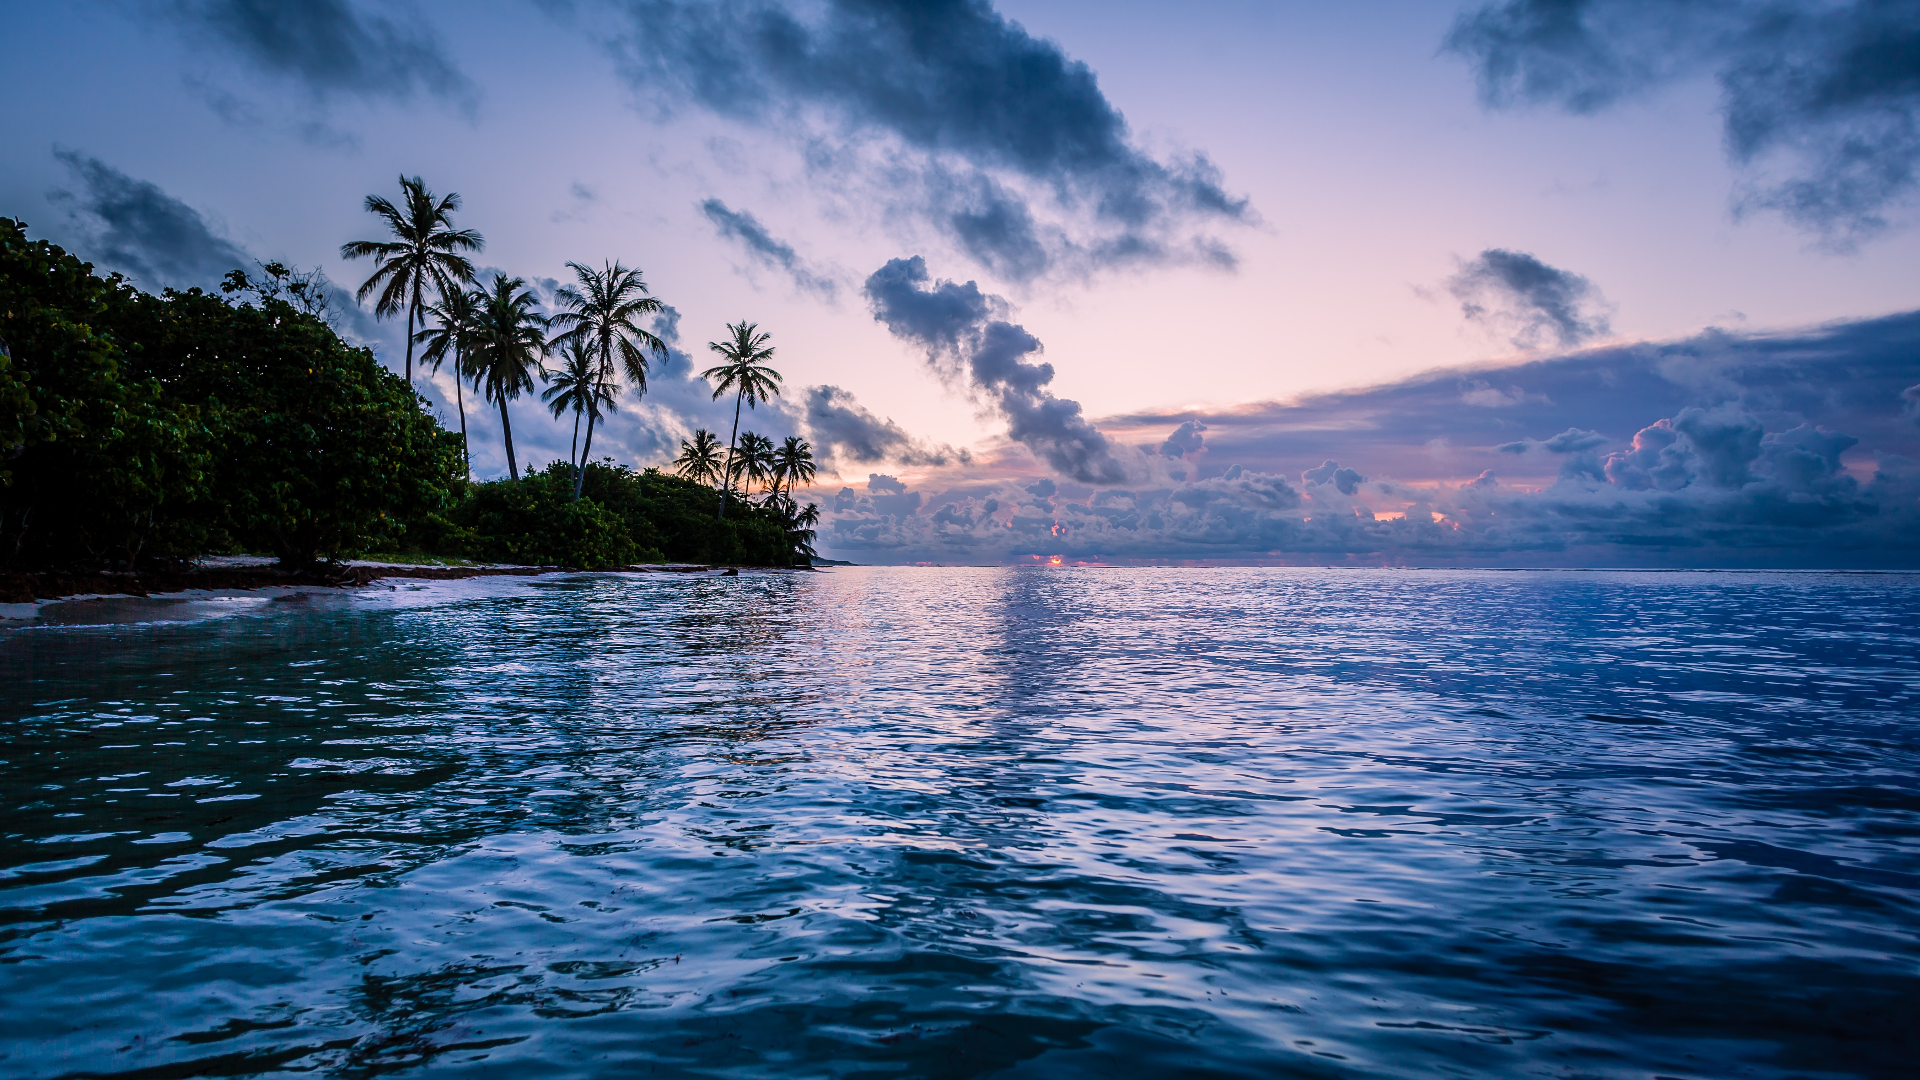 General 1920x1080 nature landscape trees clouds water beach water ripples sunset horizon palm trees Caribbean